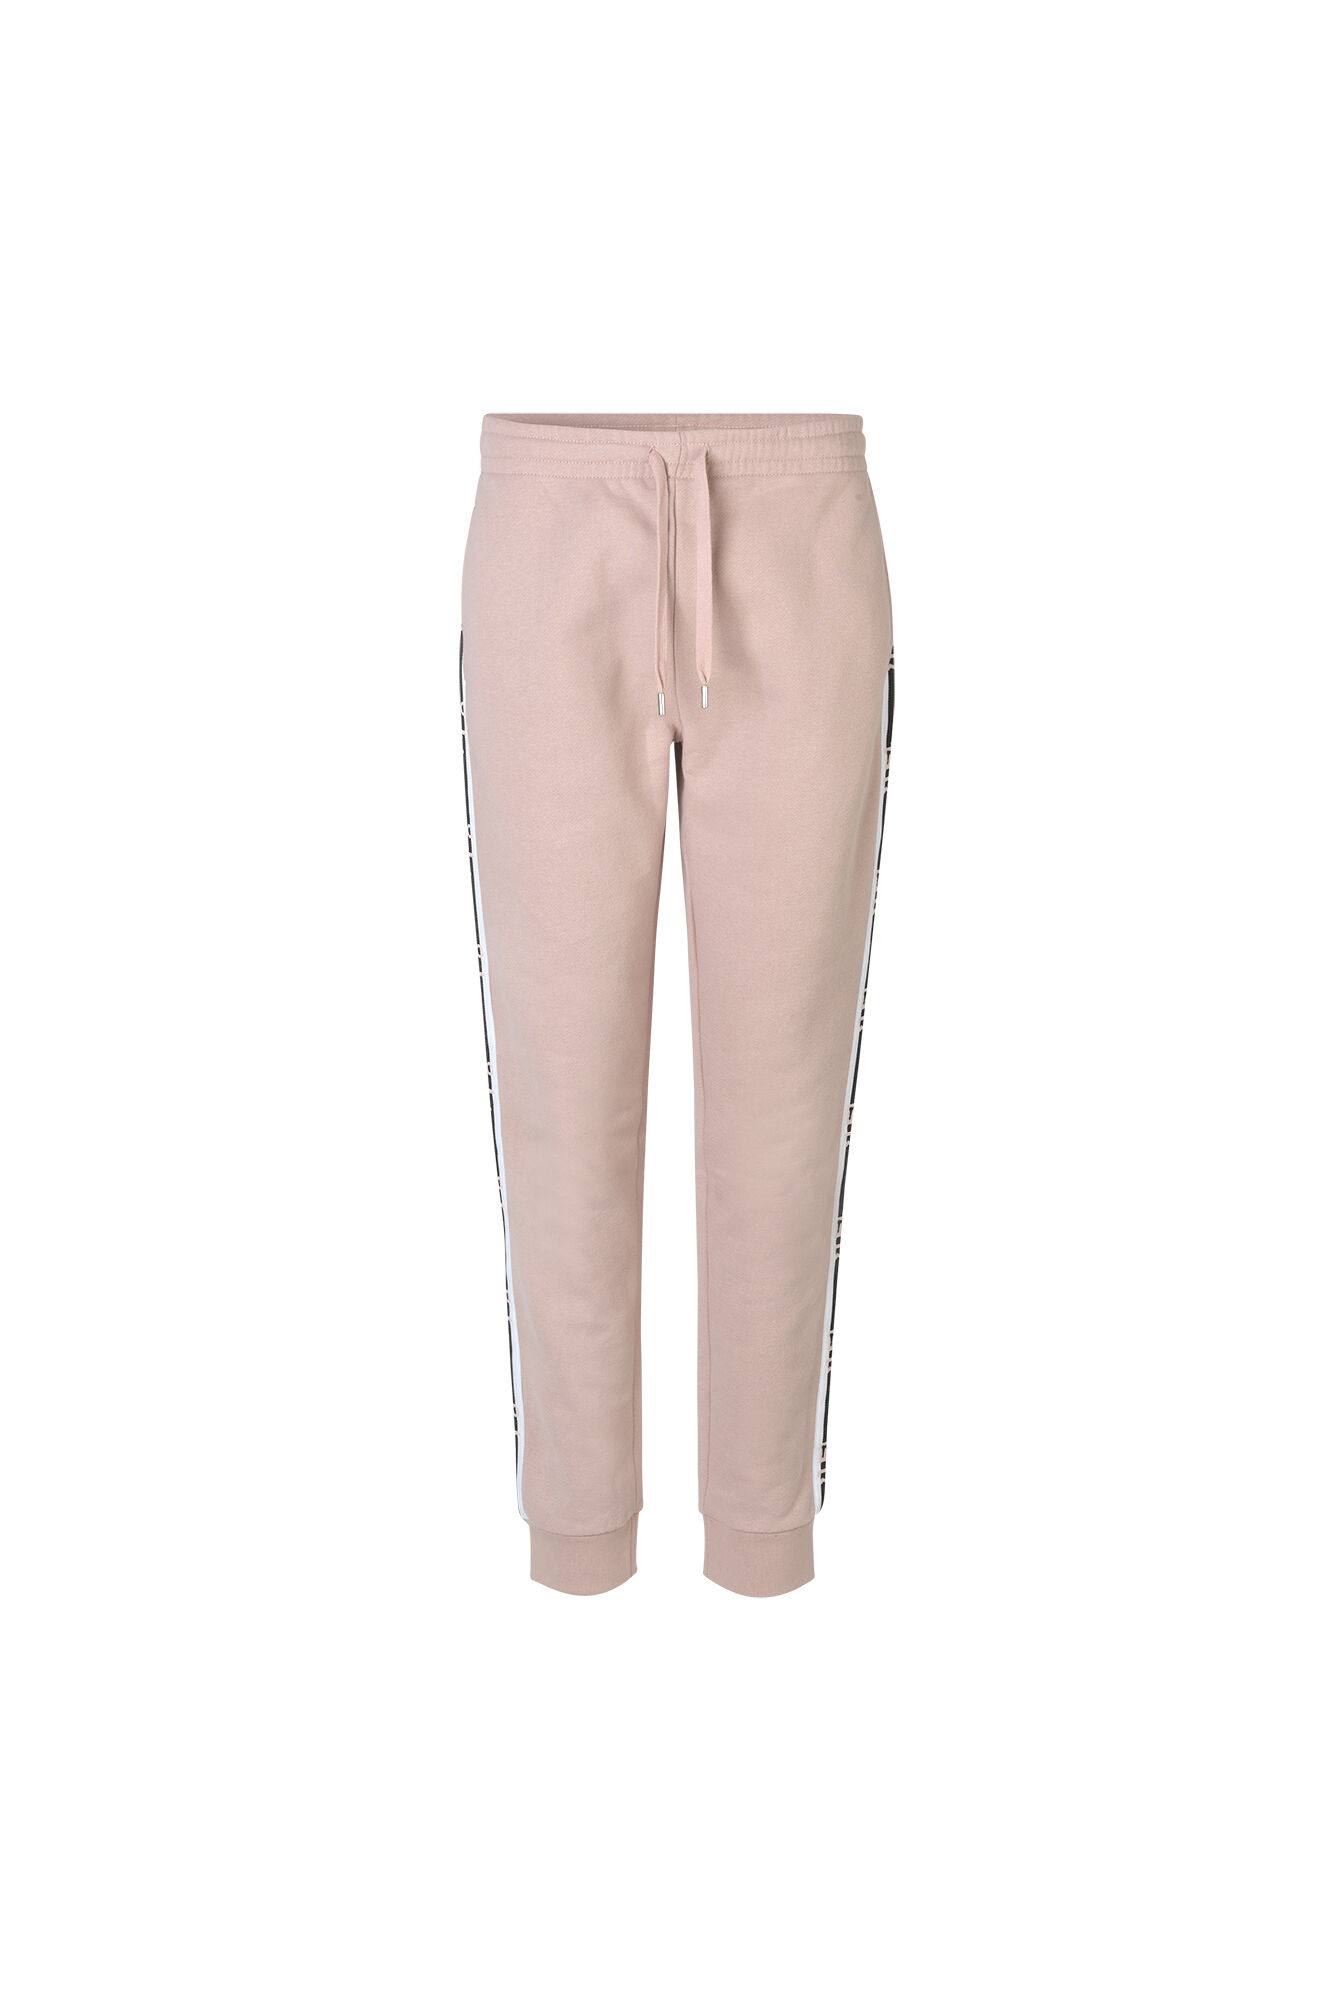 ENCHEWY PANTS 5899